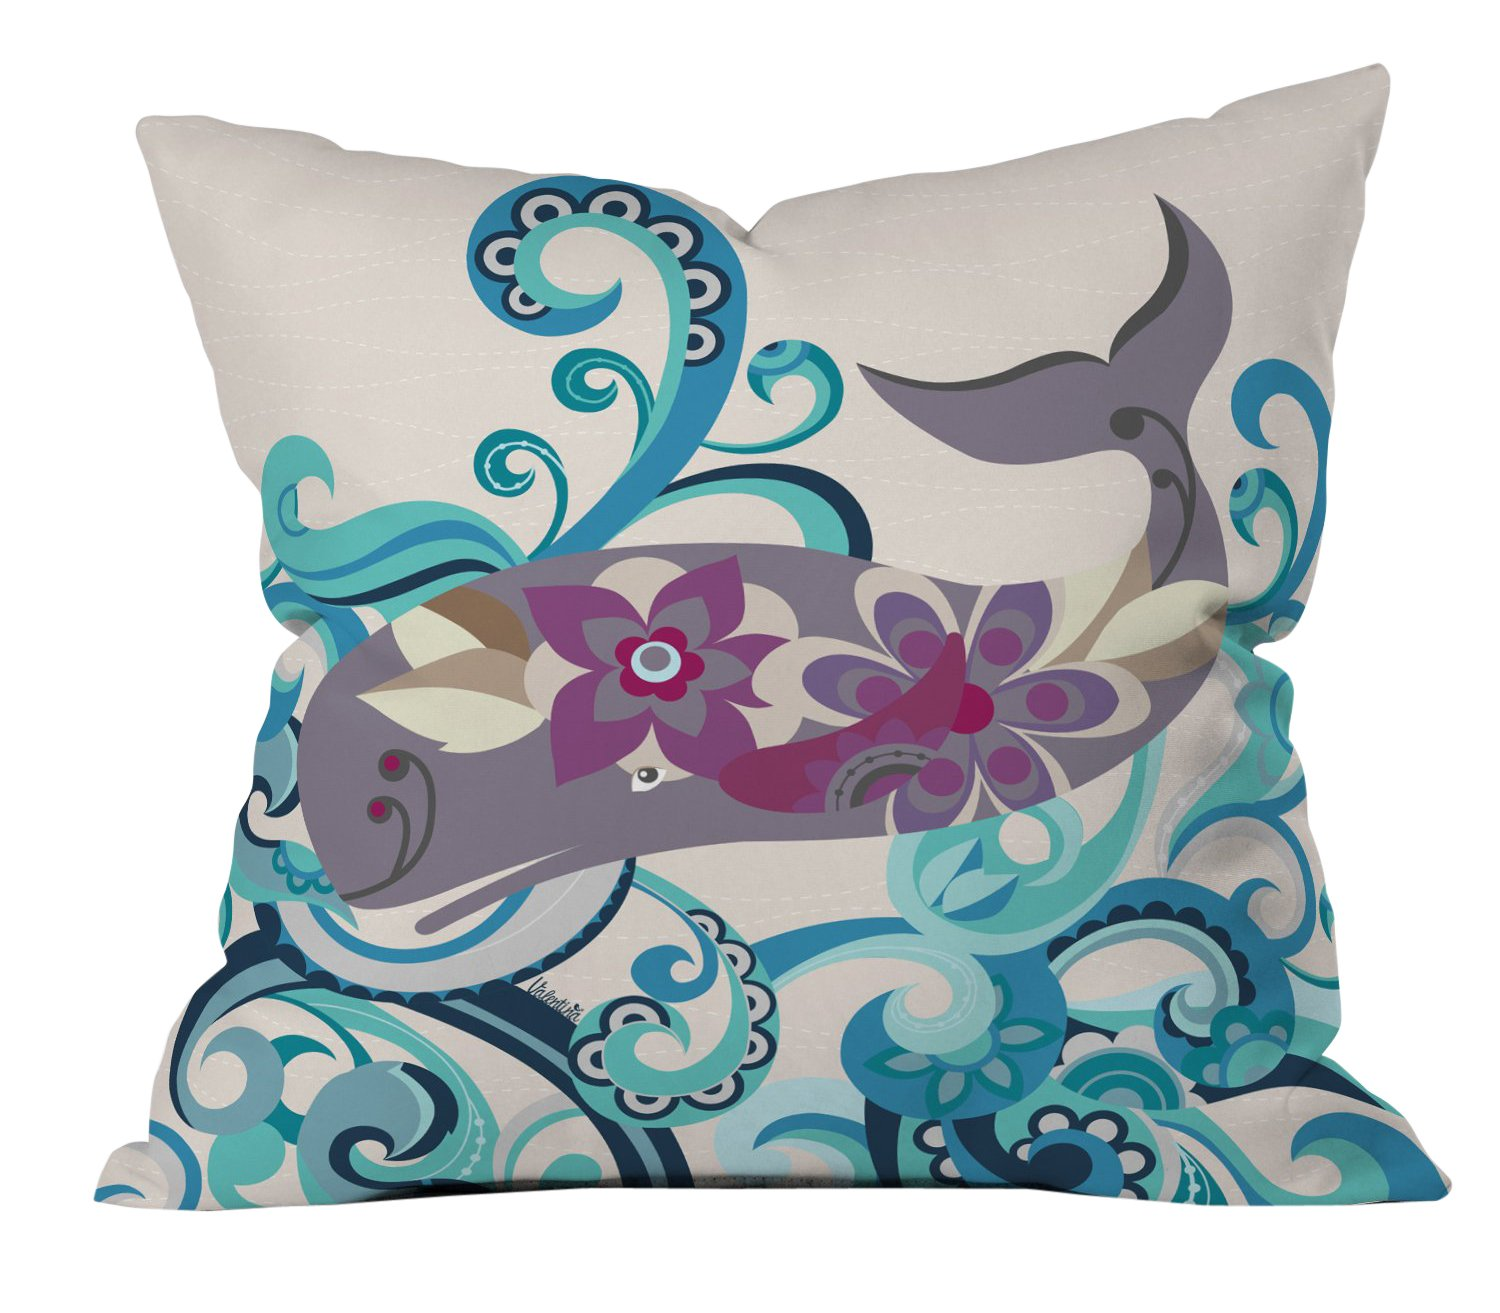 Deny Designs Valentina Ramos Hello Person Outdoor Throw Pillow 20 x 20